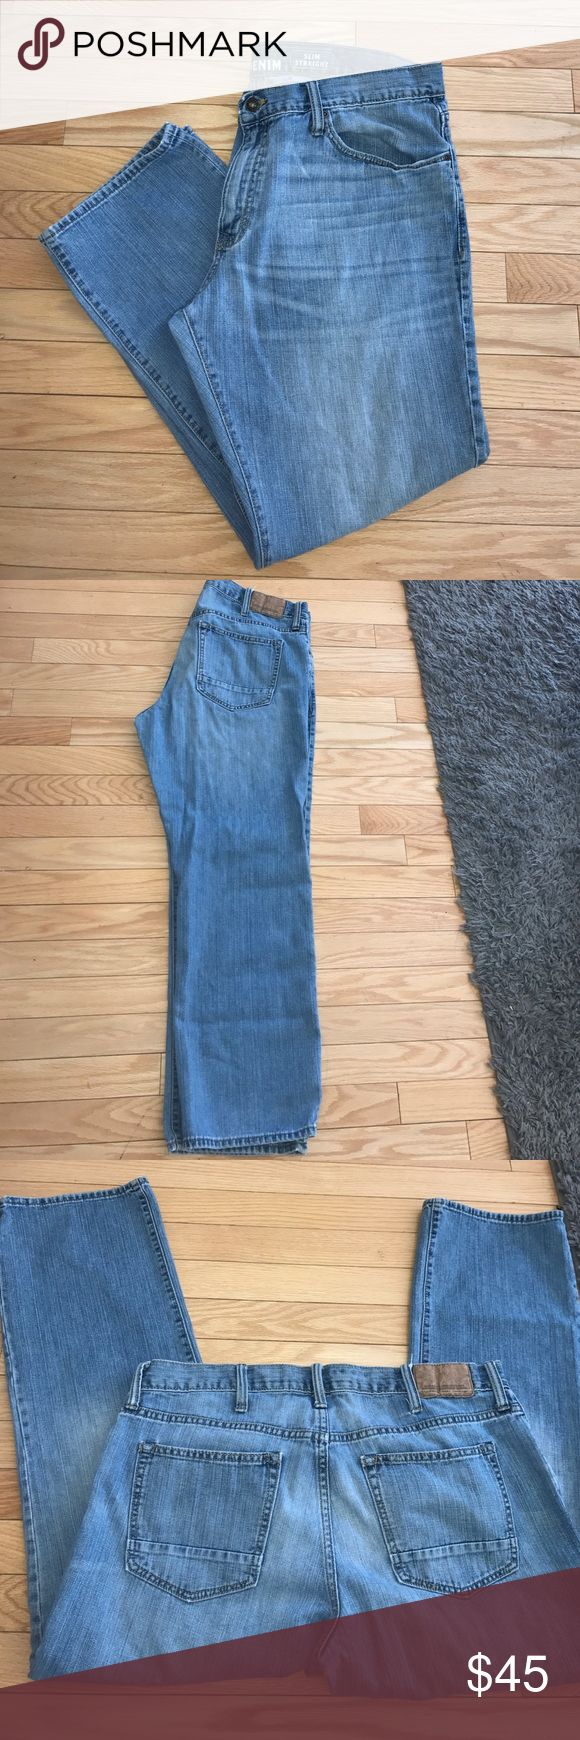 Old Navy Men's  Jeans 36X30 - Slim Straight fit Old Navy Men's Blue Jeans 36X30 - Slim Straight fit . Pre-loved Condition. Zipper and button fly . Old Navy Micro Blue Premium Denim Collection.  100% COTTON Old Navy Jeans Slim Straight